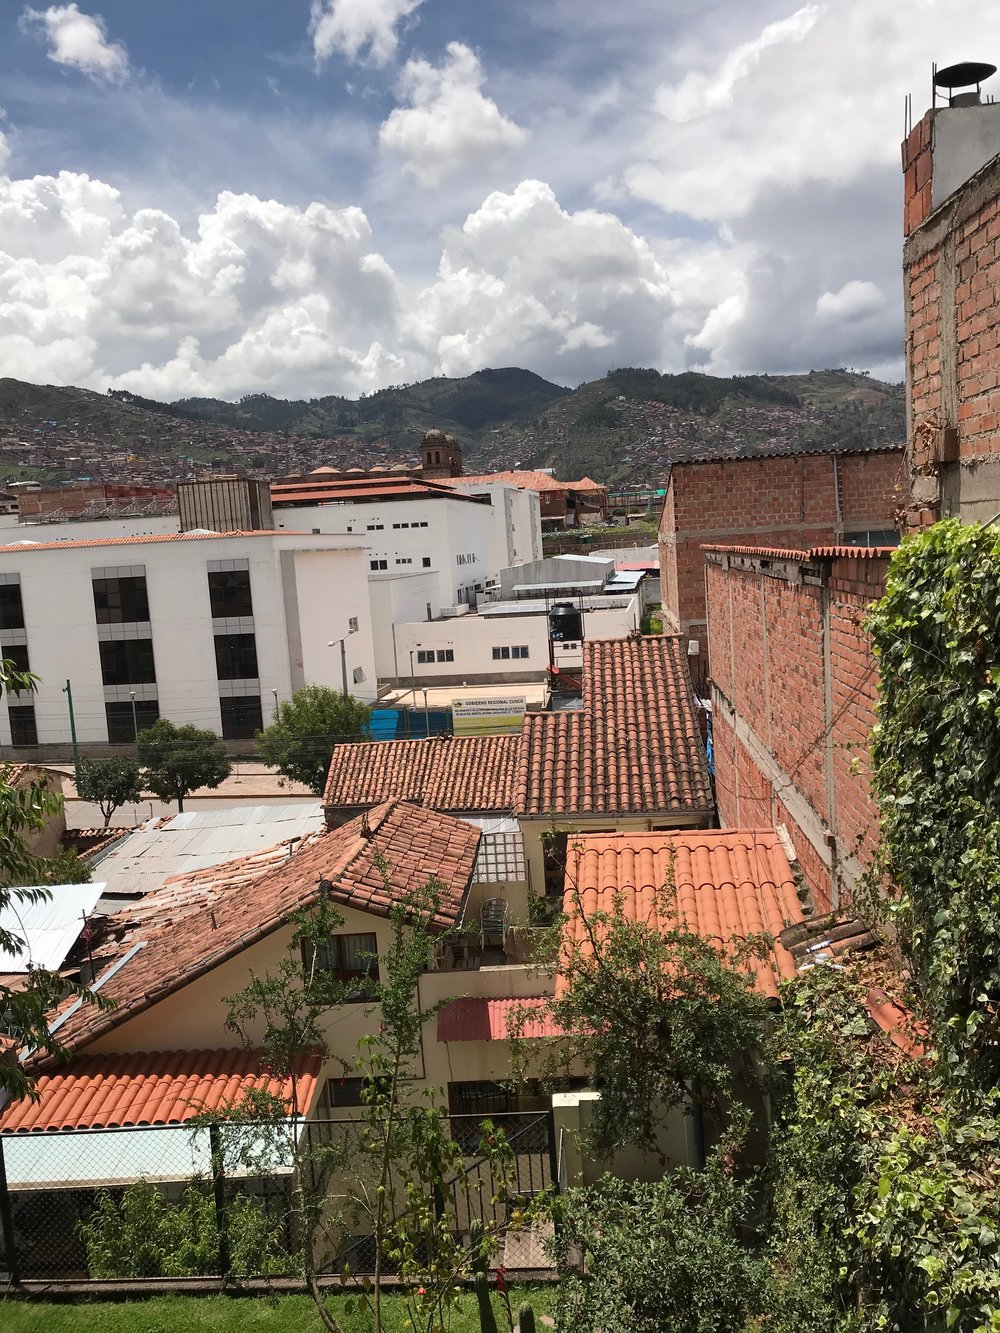 The view from the home we are living at in Cusco.